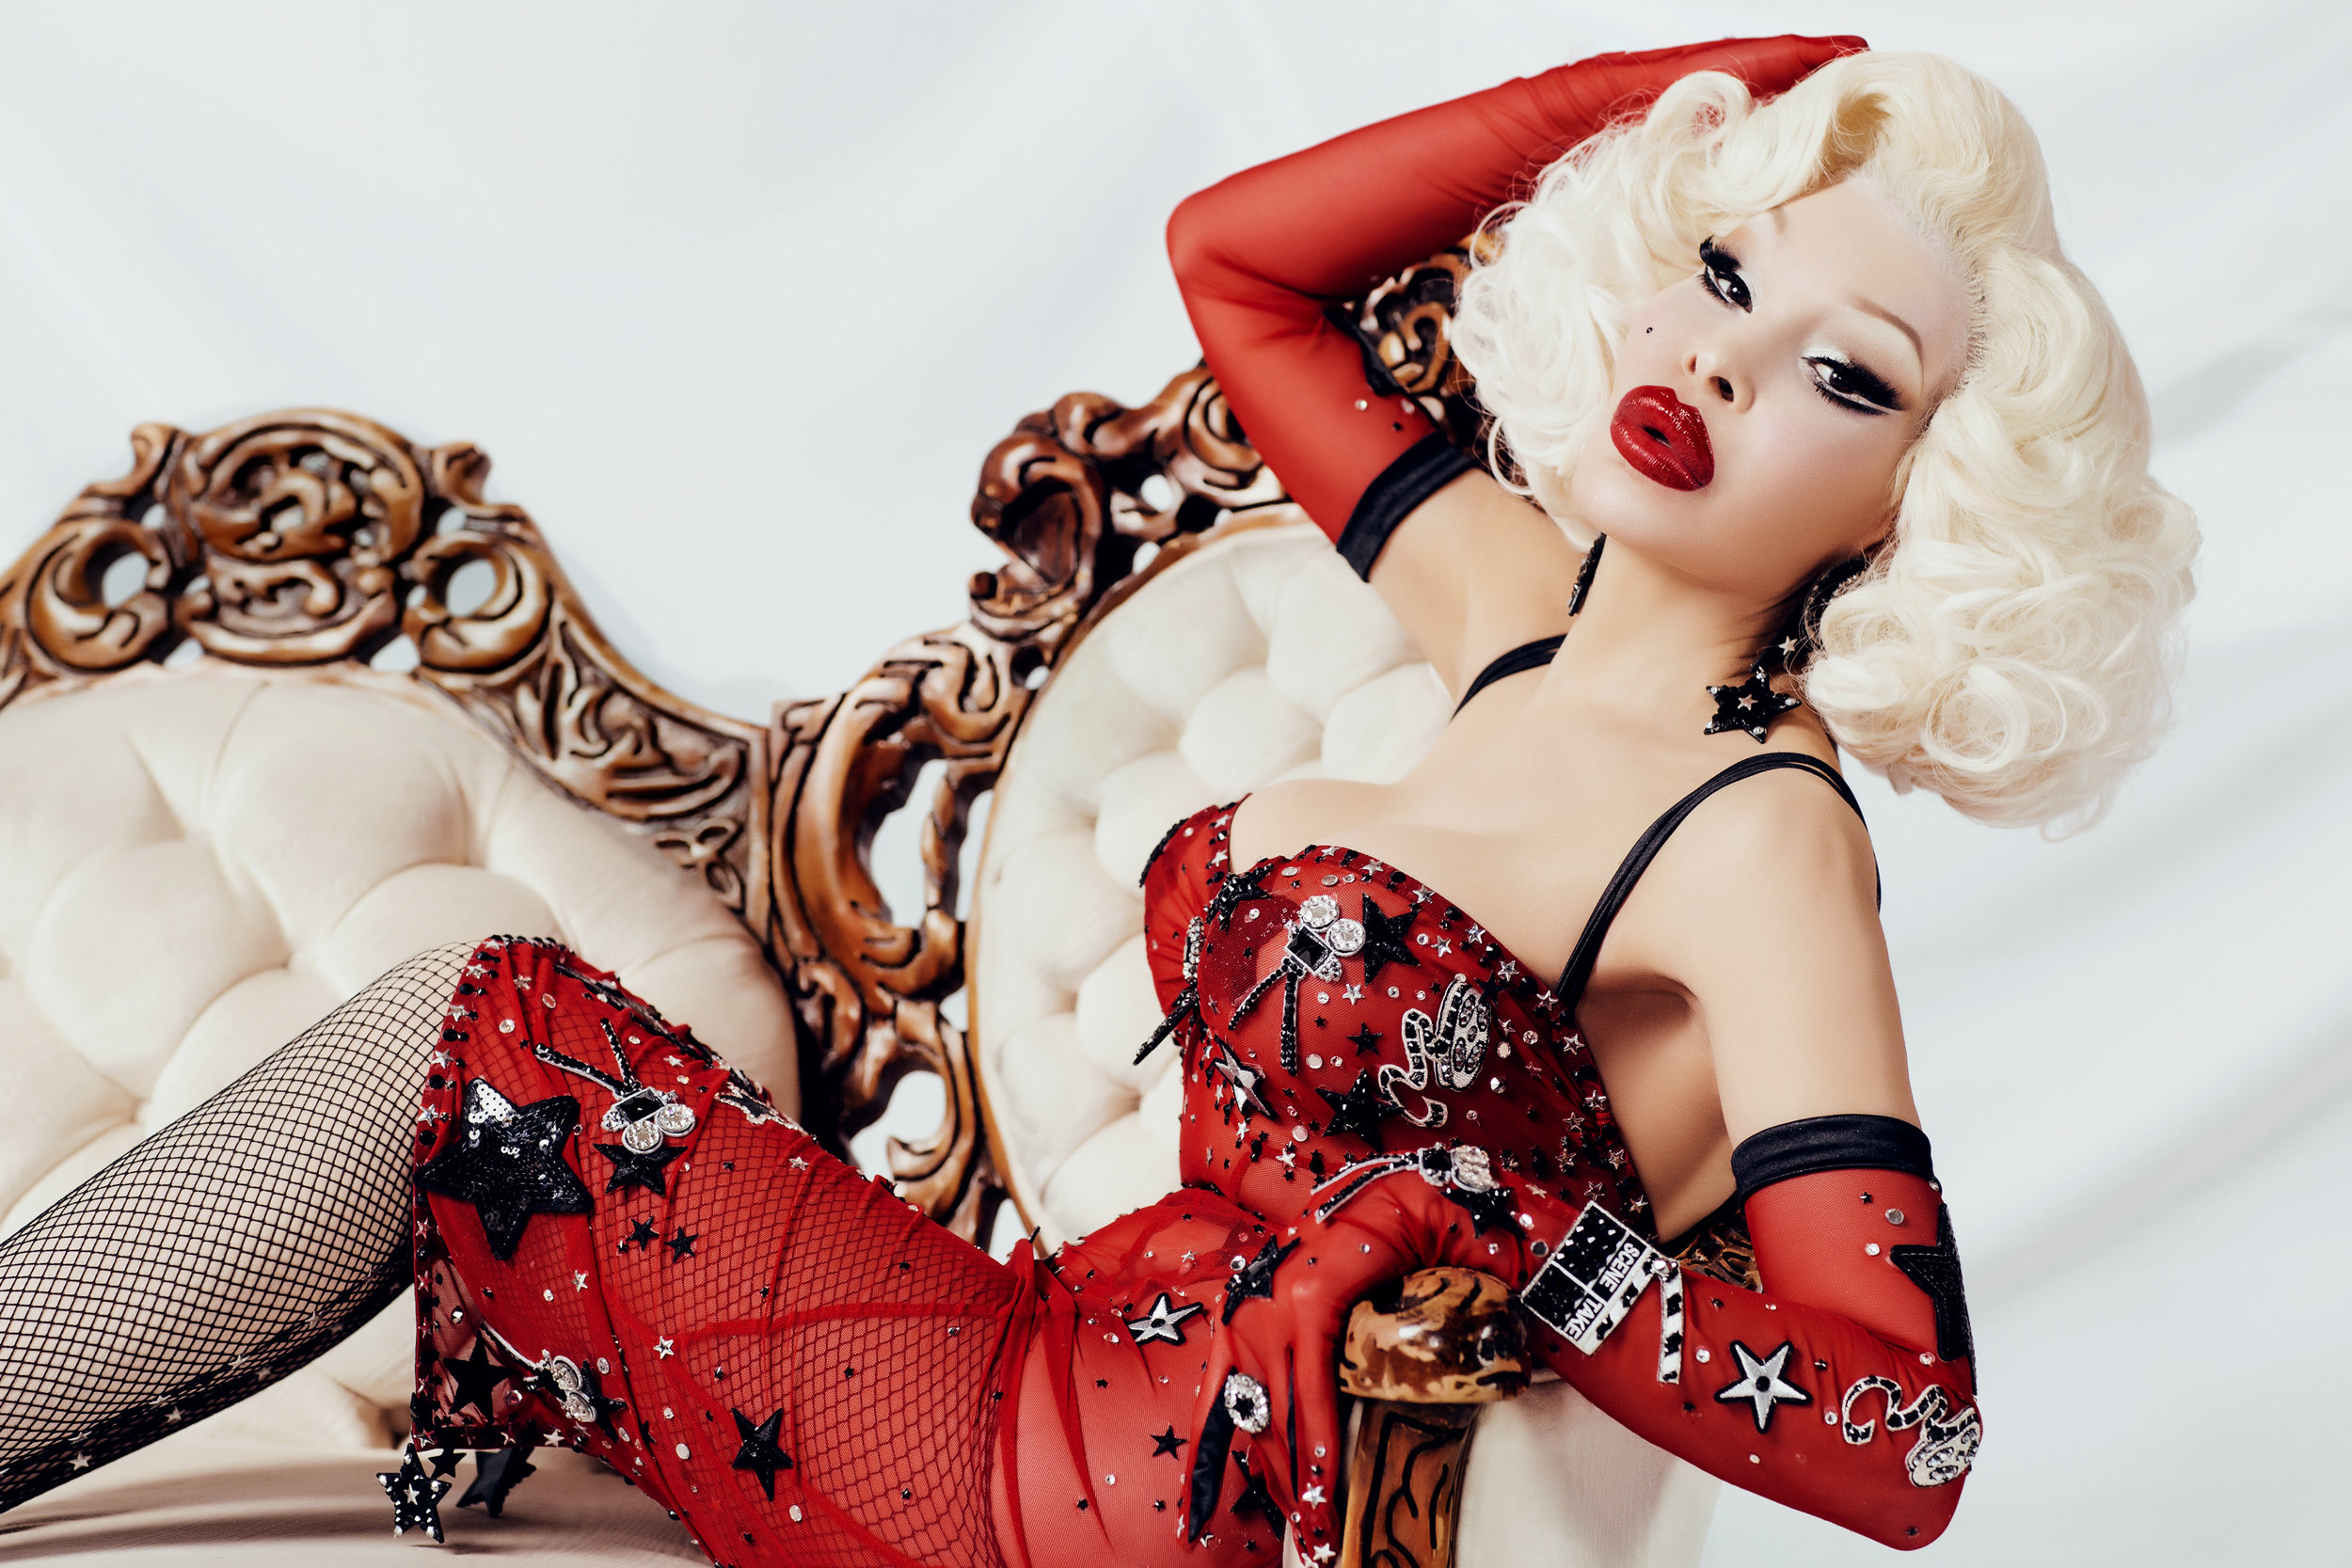 amanda_lepore_by_celebrity_photographer_gia_goodrich_for_pica_meta_gala_drag_icon_portraits_lg_001.jpg